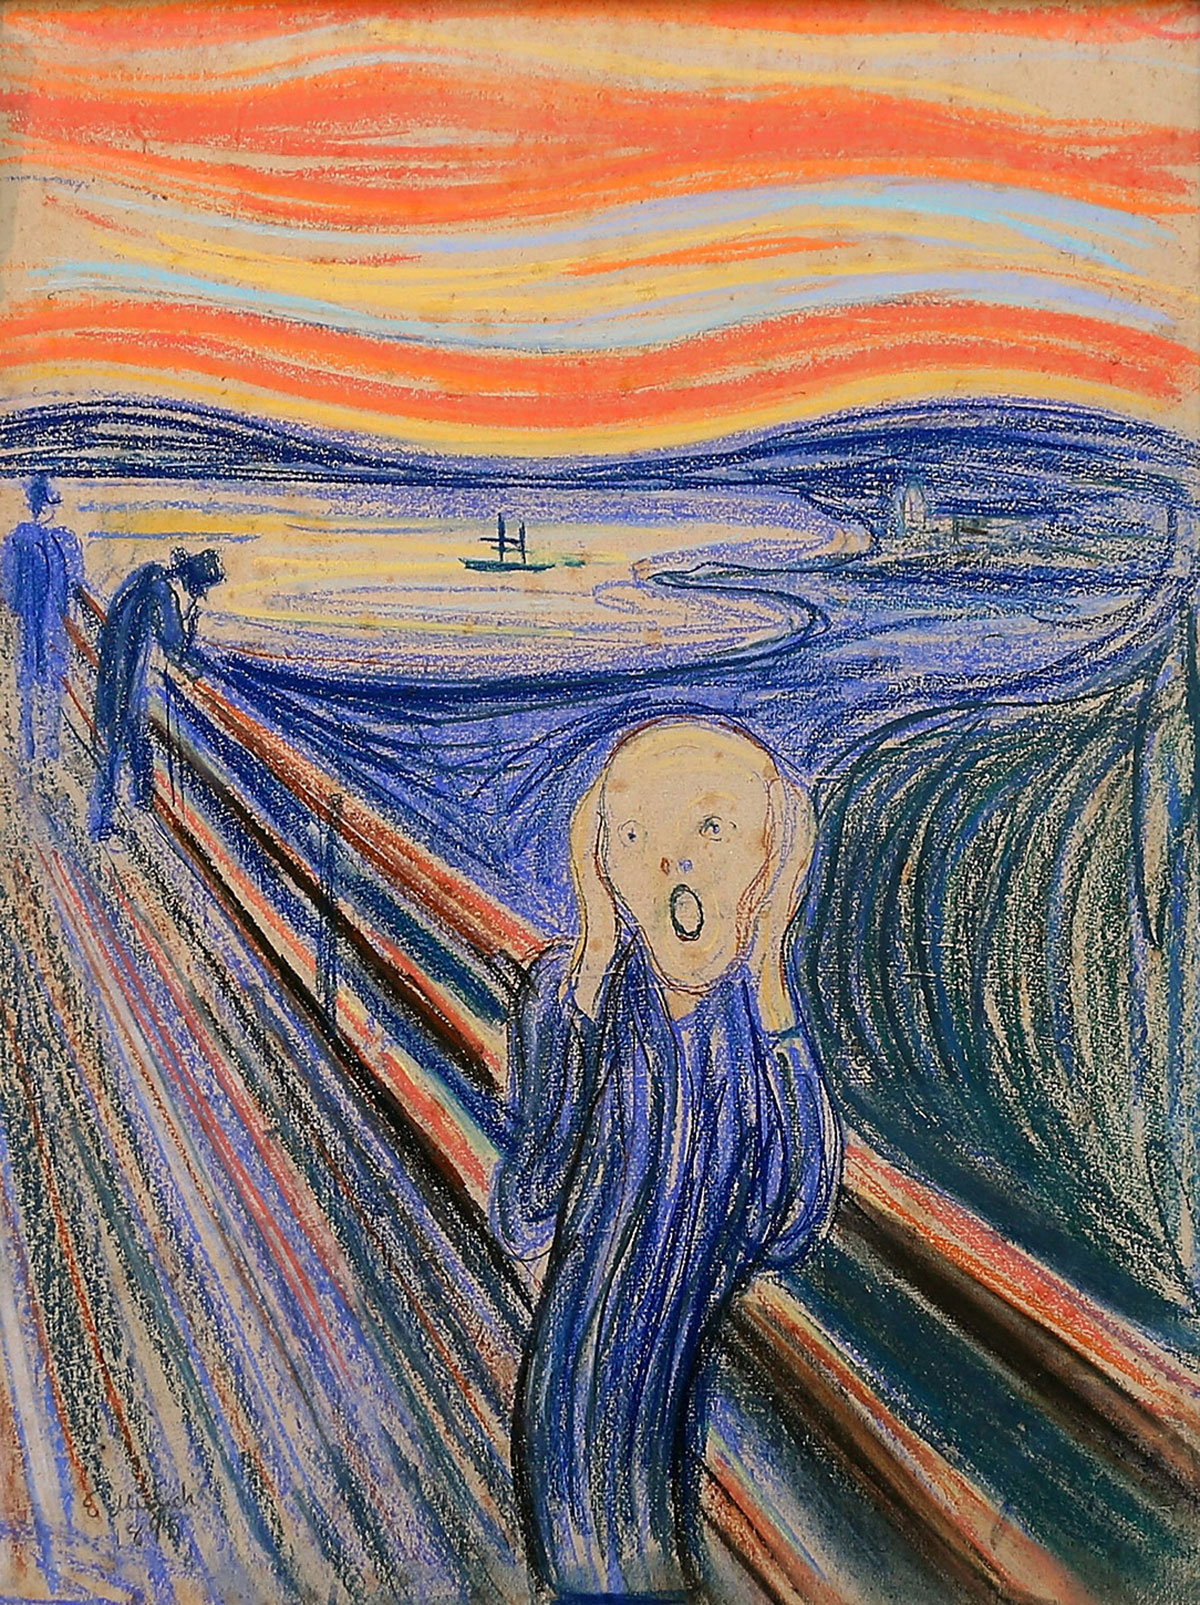 Edvard Munch's The Scream Artwork Sells for Record $119.9 million ...